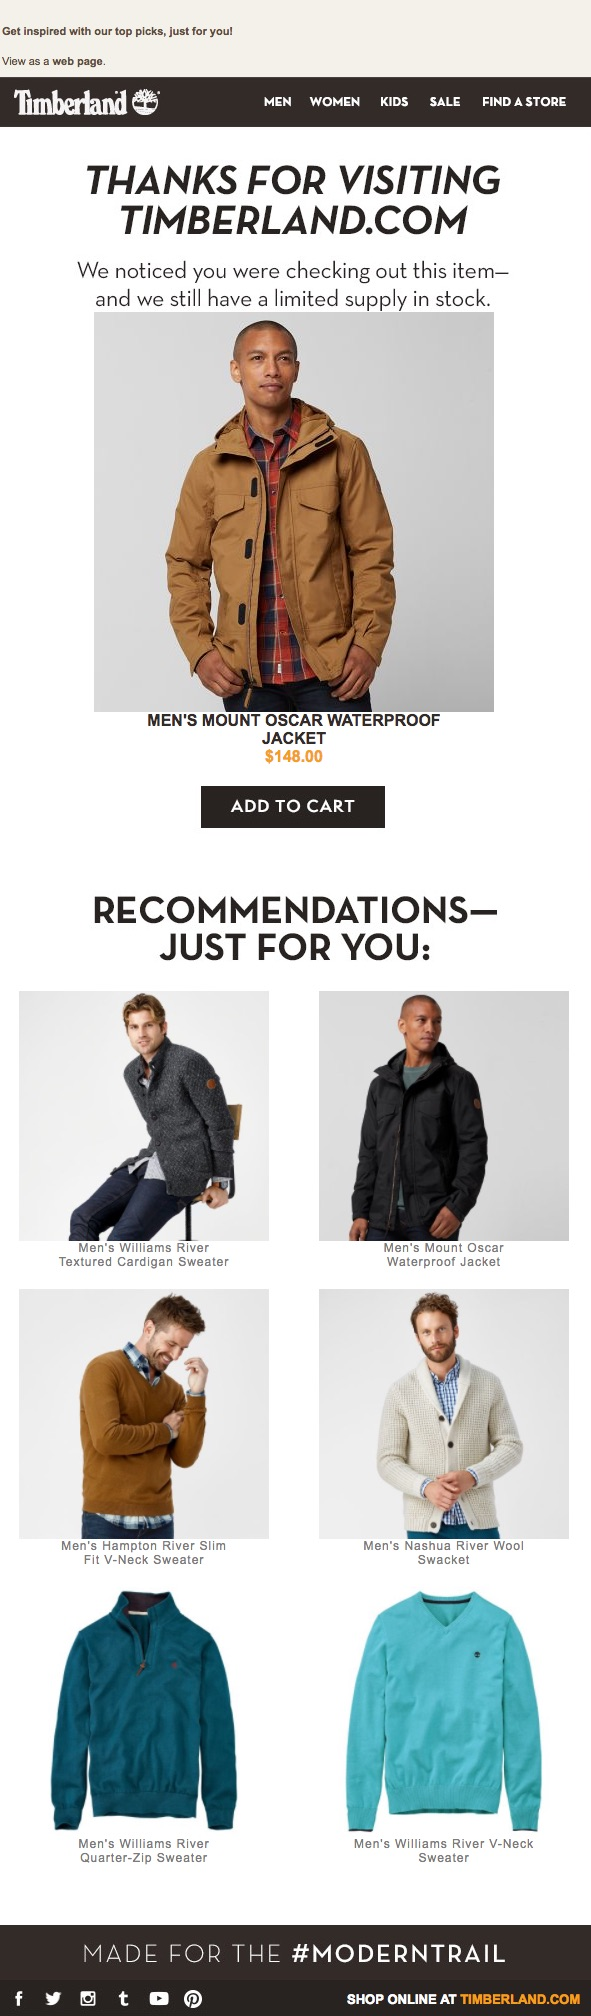 Cart abandonment email from Timberland